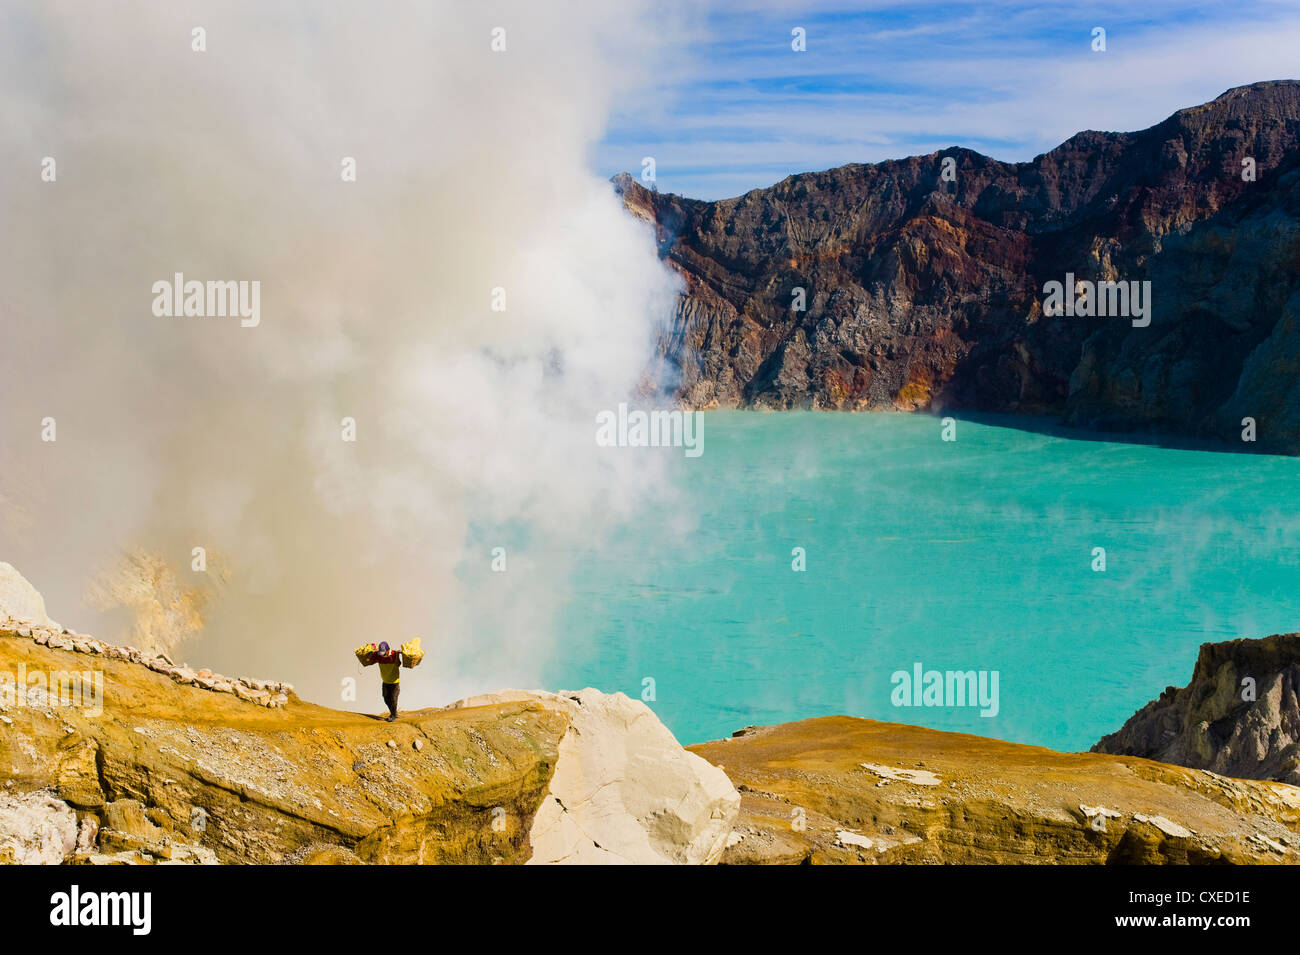 Sulphur worker appearing out of toxic fumes at Kawah Ijen, East Java, Indonesia, Southeast Asia, Asia - Stock Image